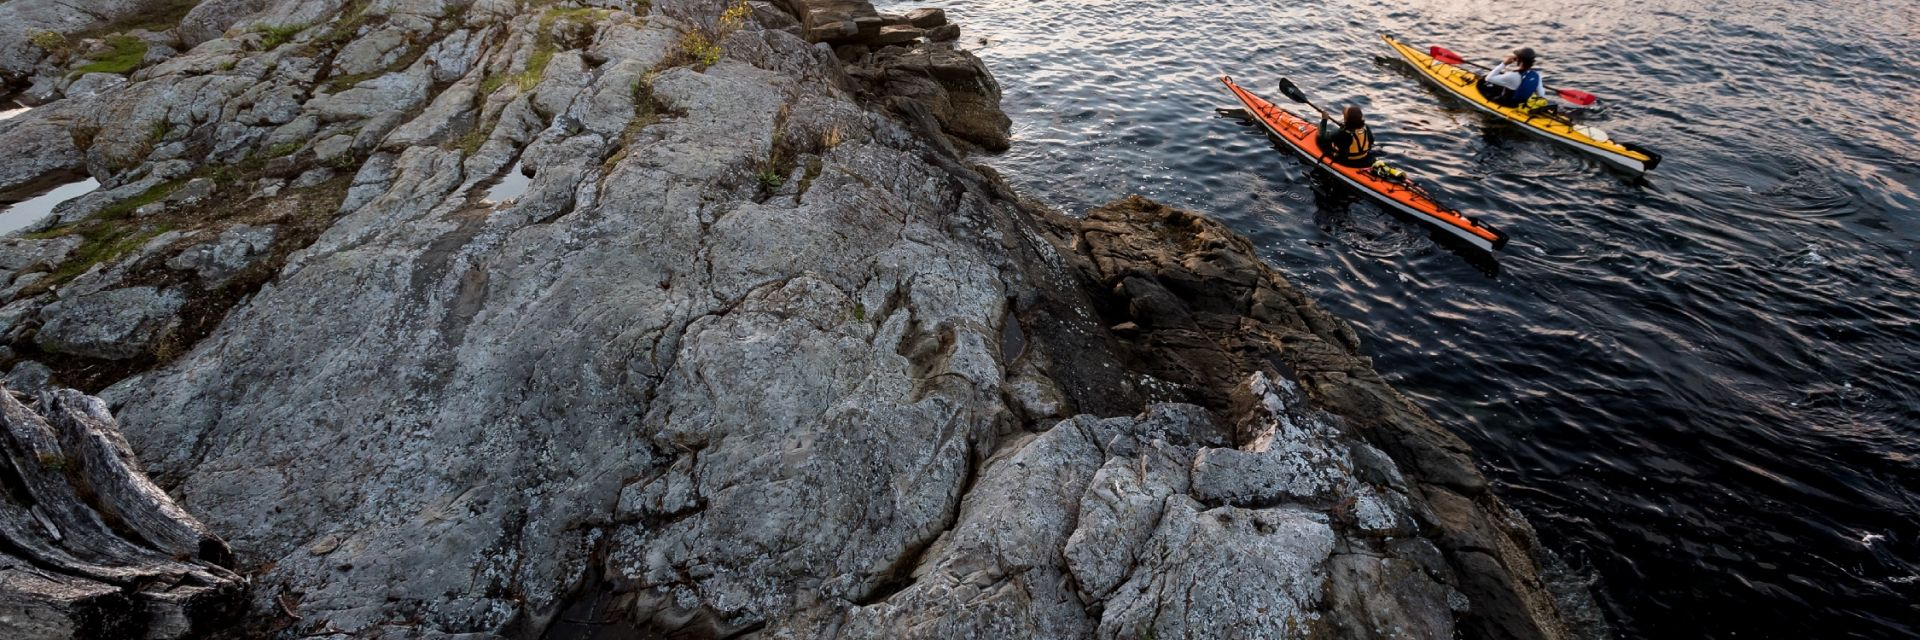 A couple kayaking off the coast of Pender Island